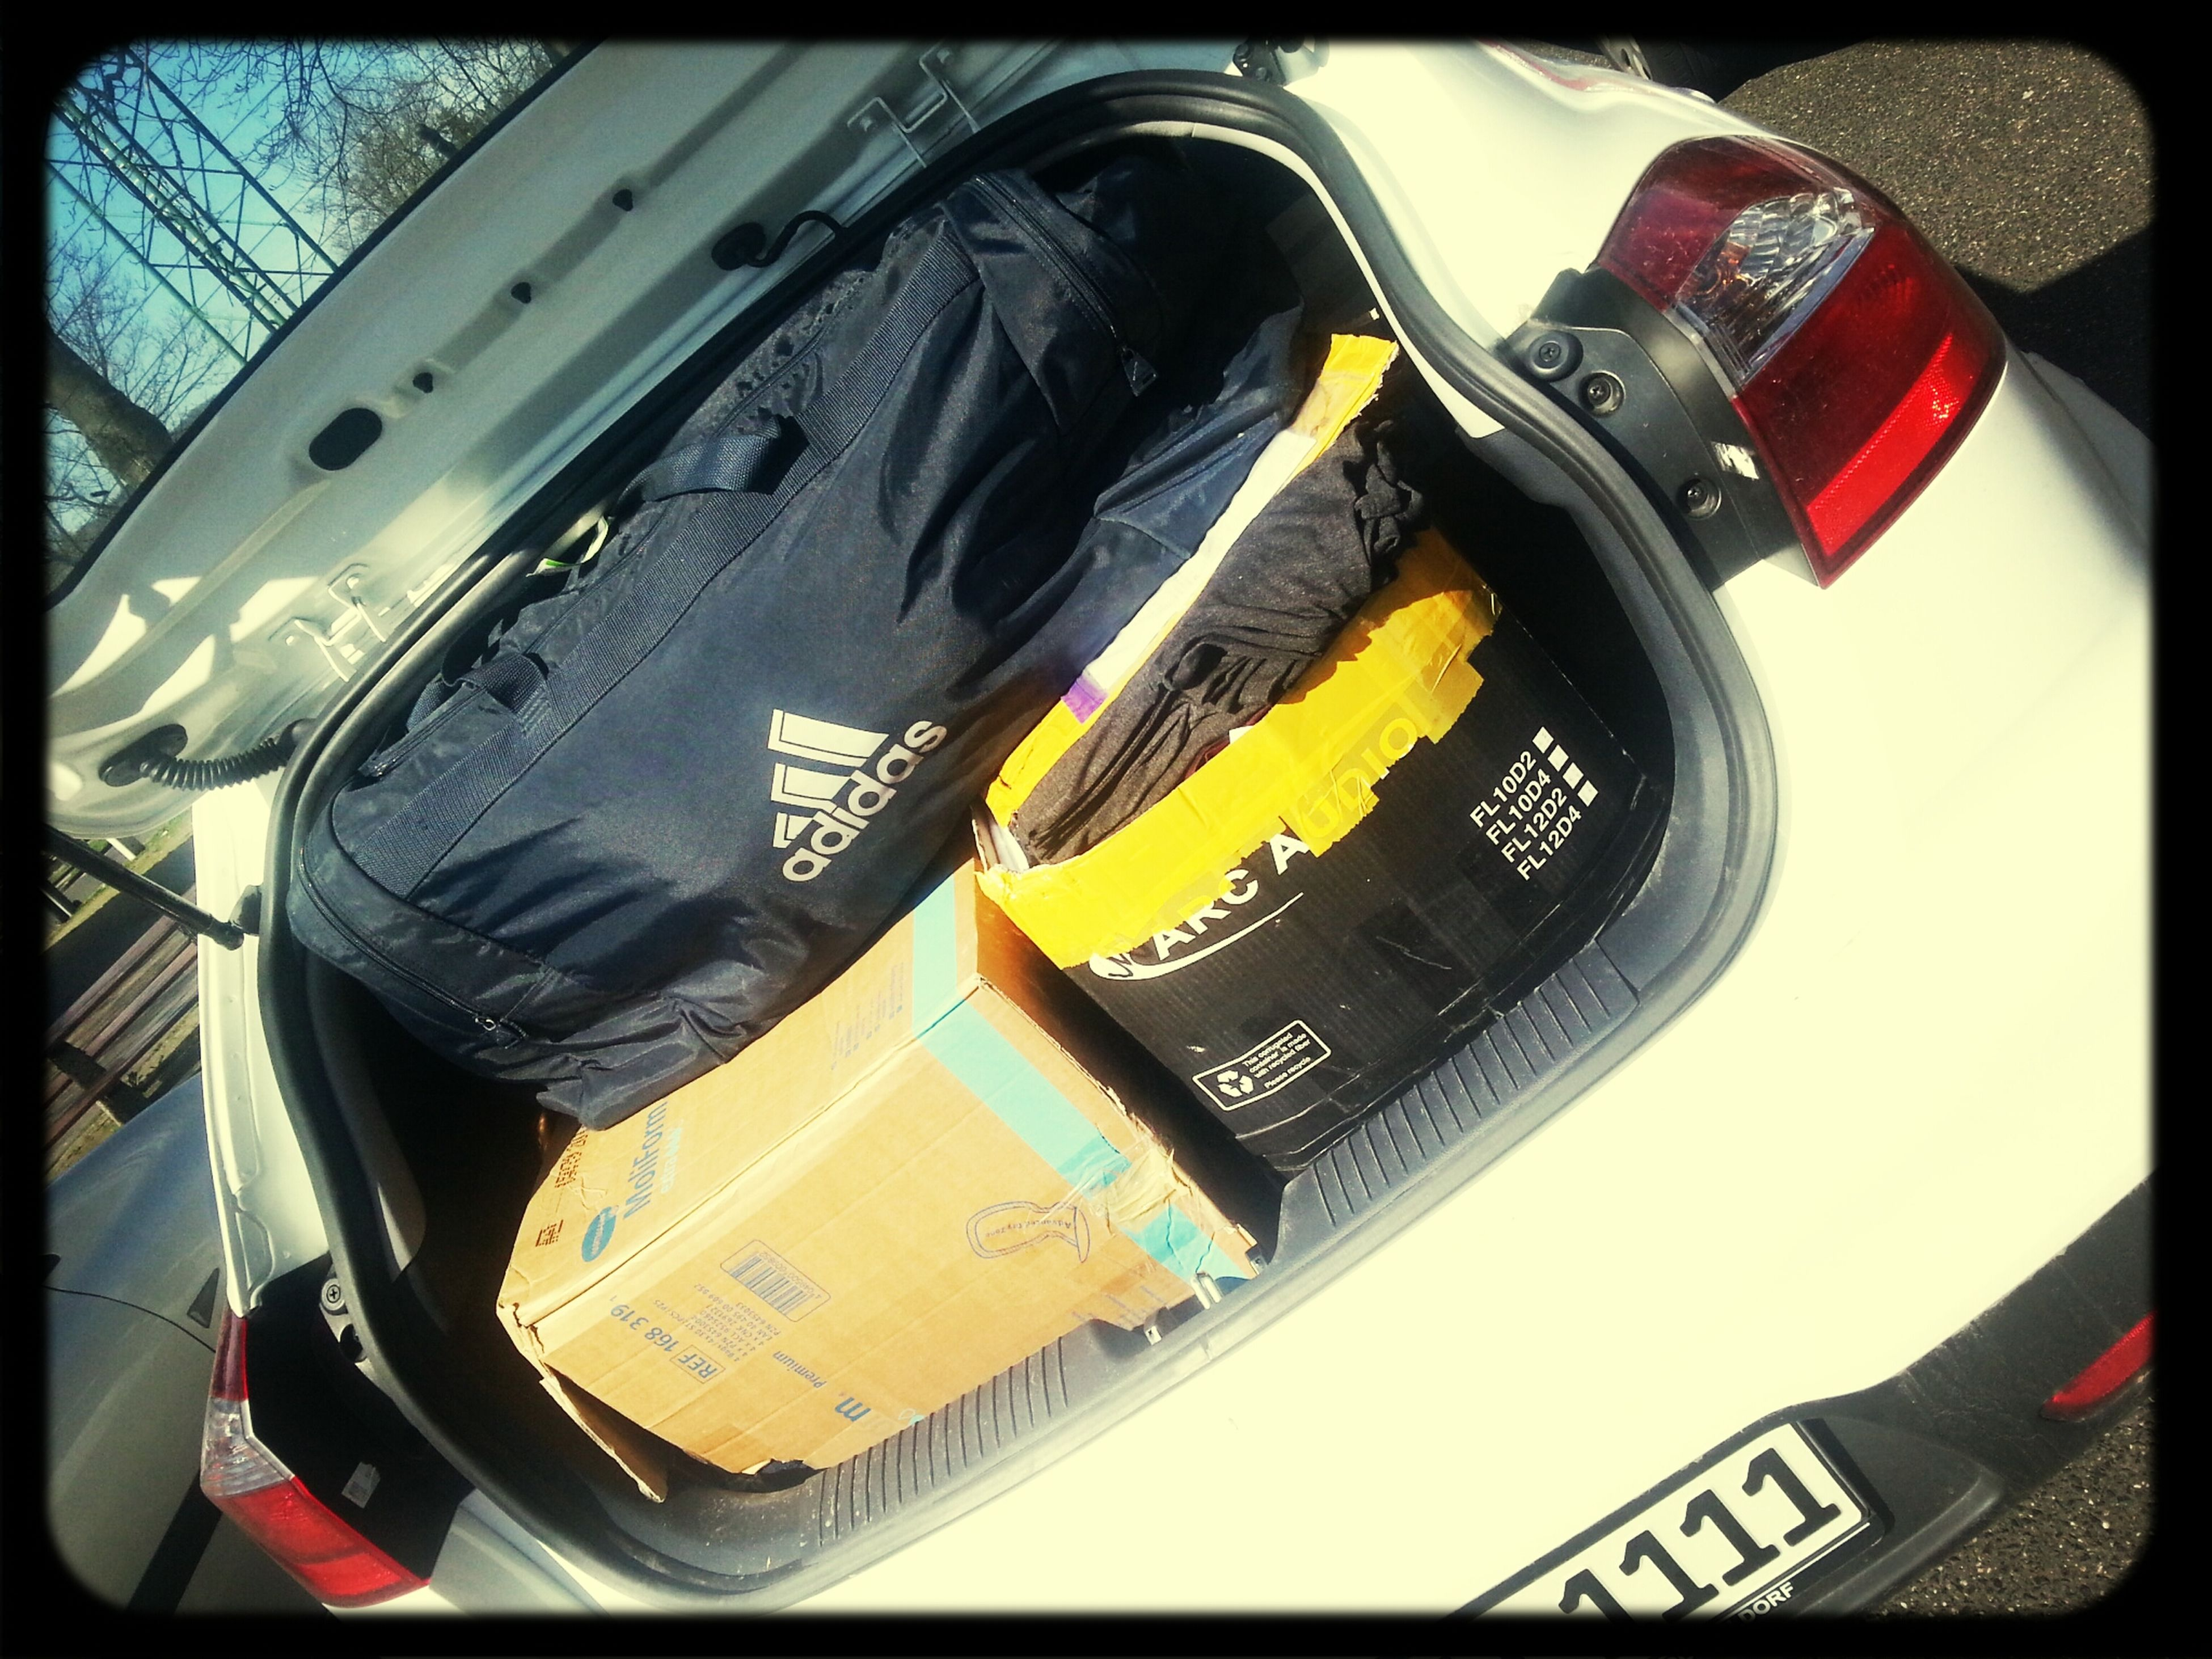 our car is completely full of nice clothes for you. L-BEACH we're coming :)